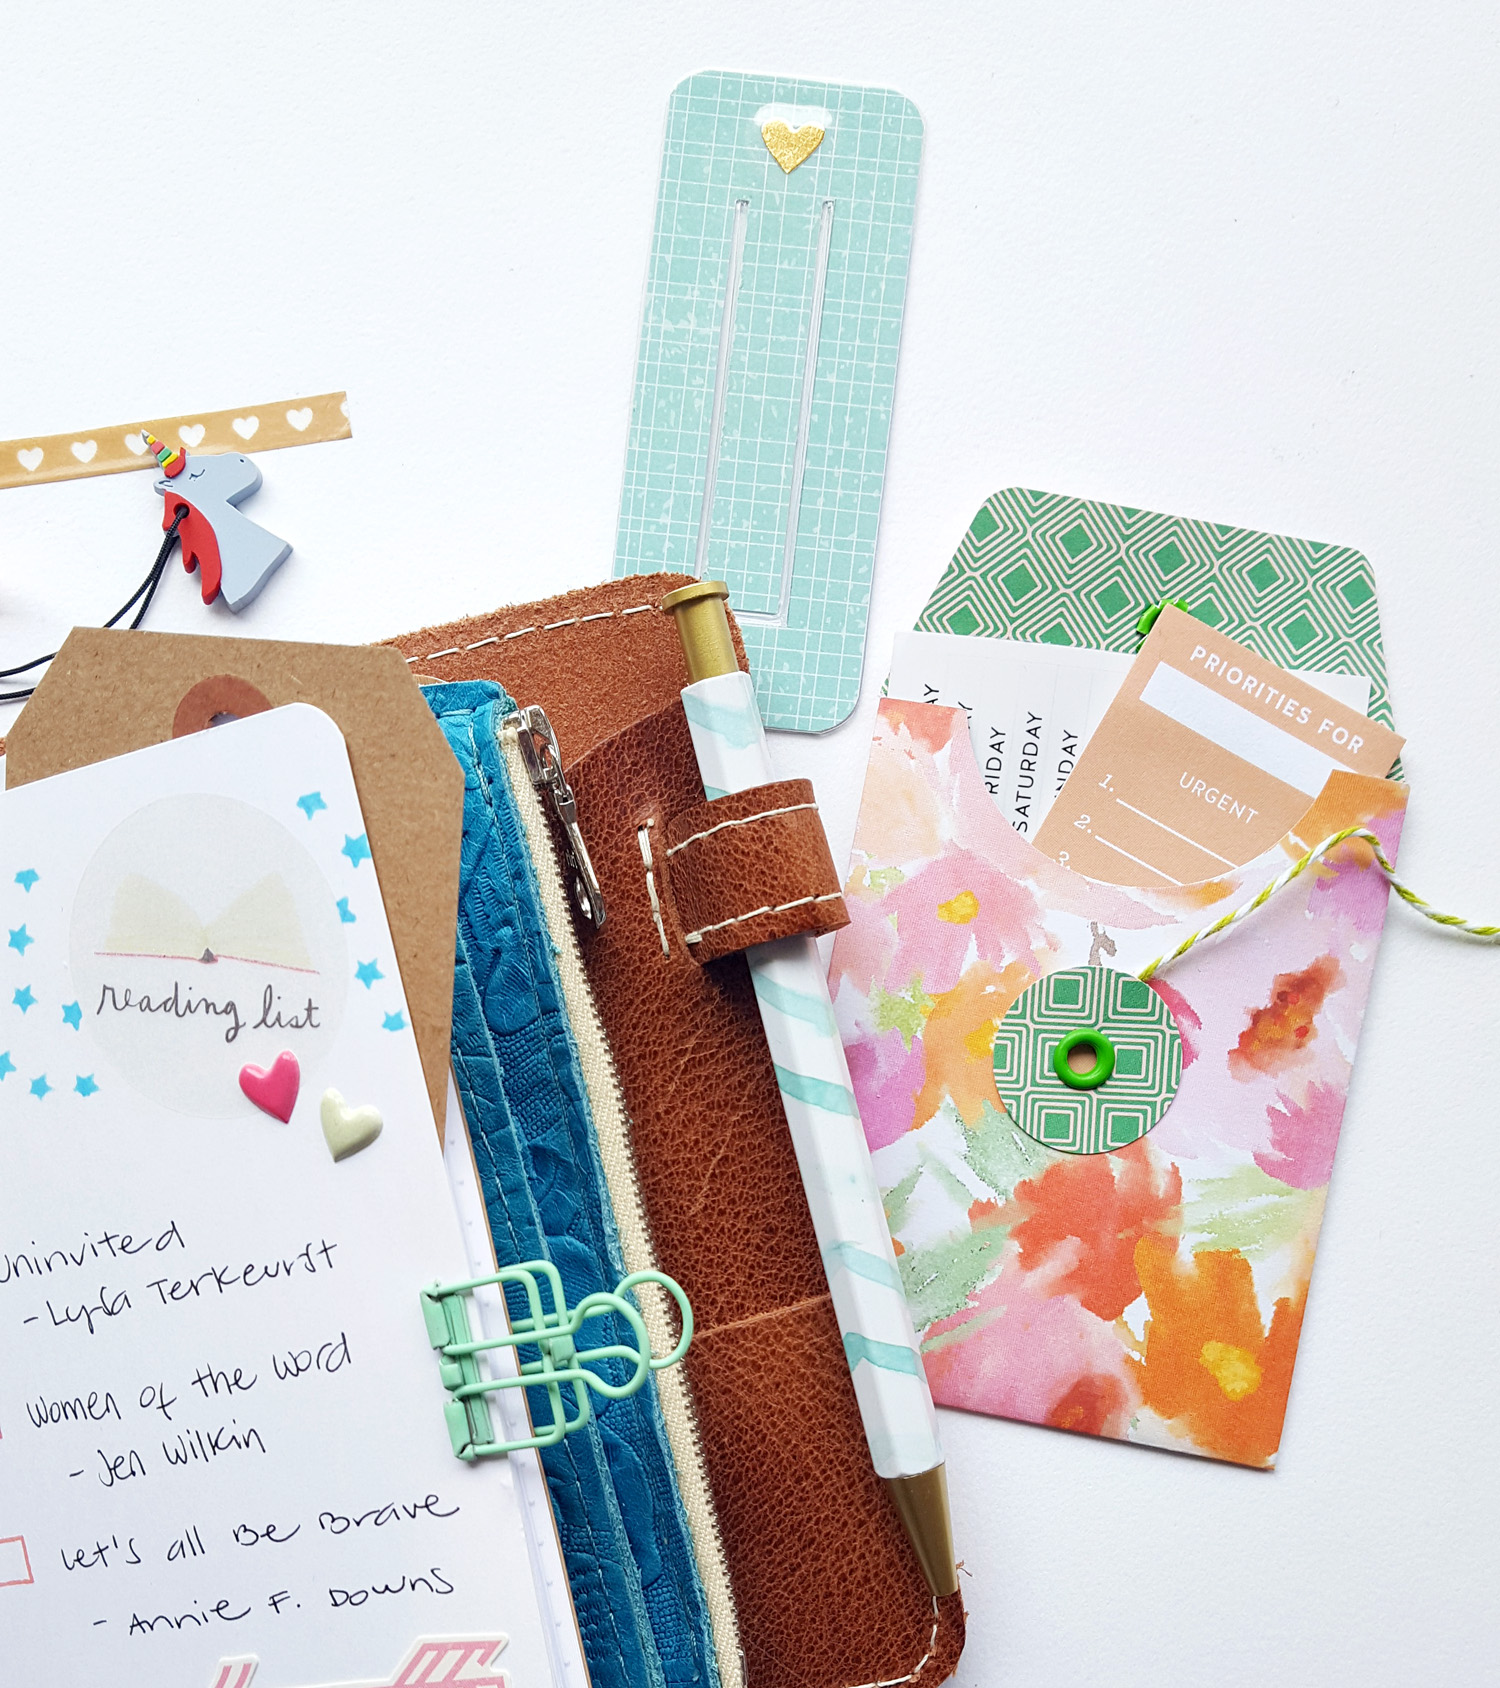 Using the Roman Holiday Planner Kit with Carla de Taboada